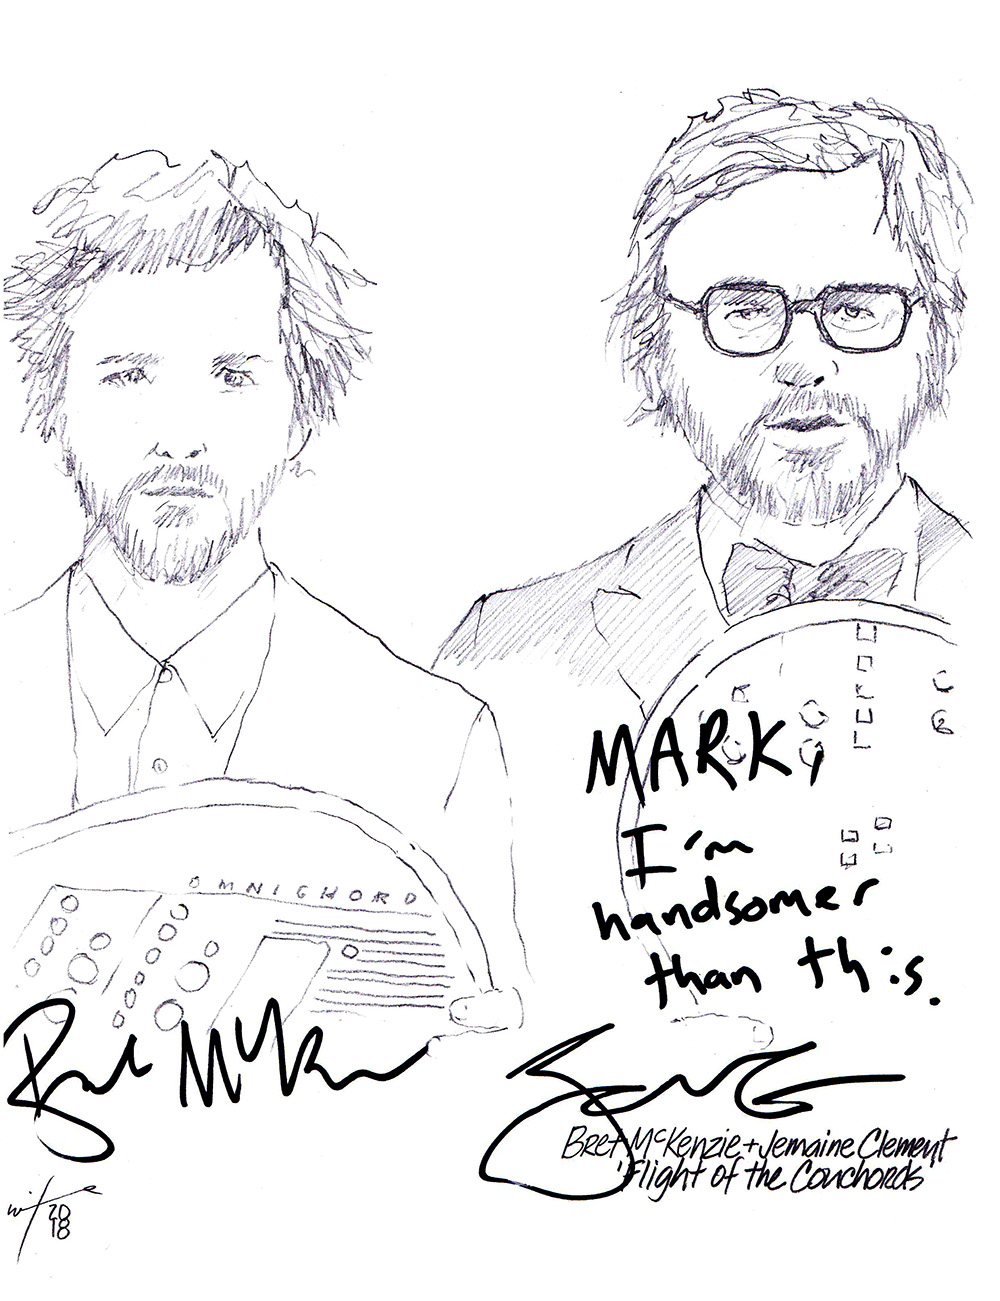 Autographed drawing of Bret McKenzie and Jemaine Clement Flight Of The Conchords